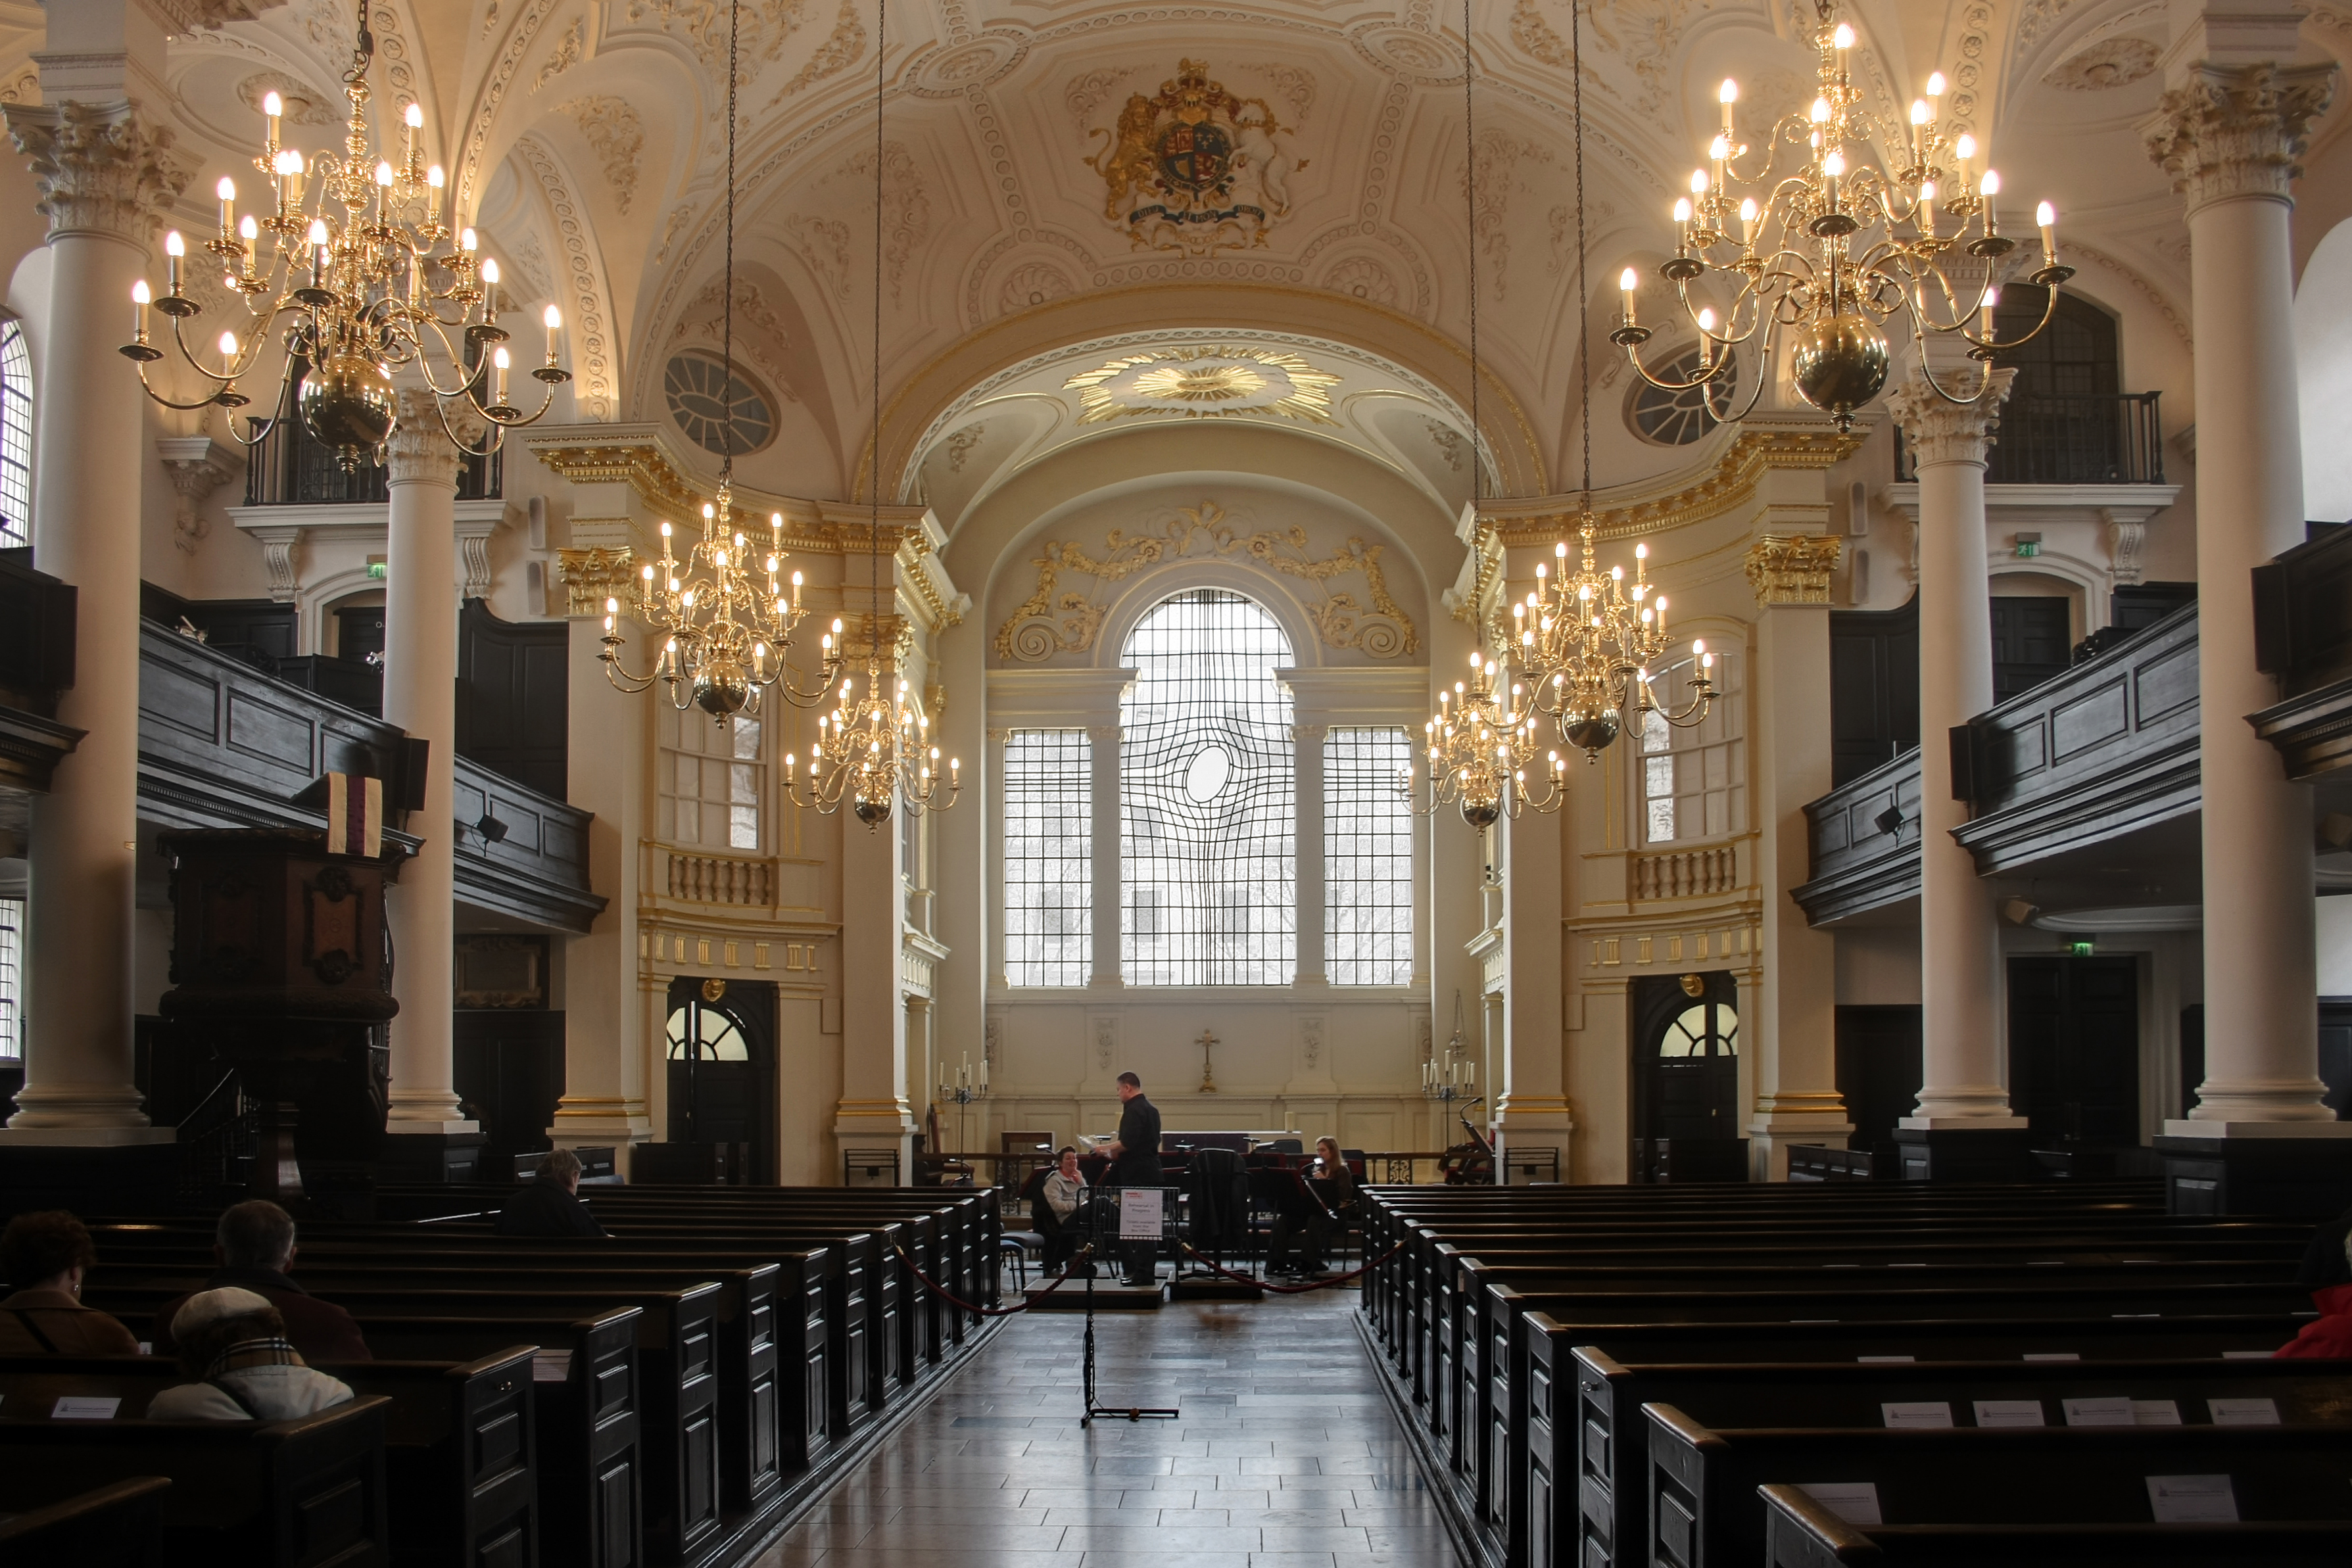 http://dic.academic.ru/pictures/wiki/files/83/Saint_Martin_in_the_Fields-2.jpg